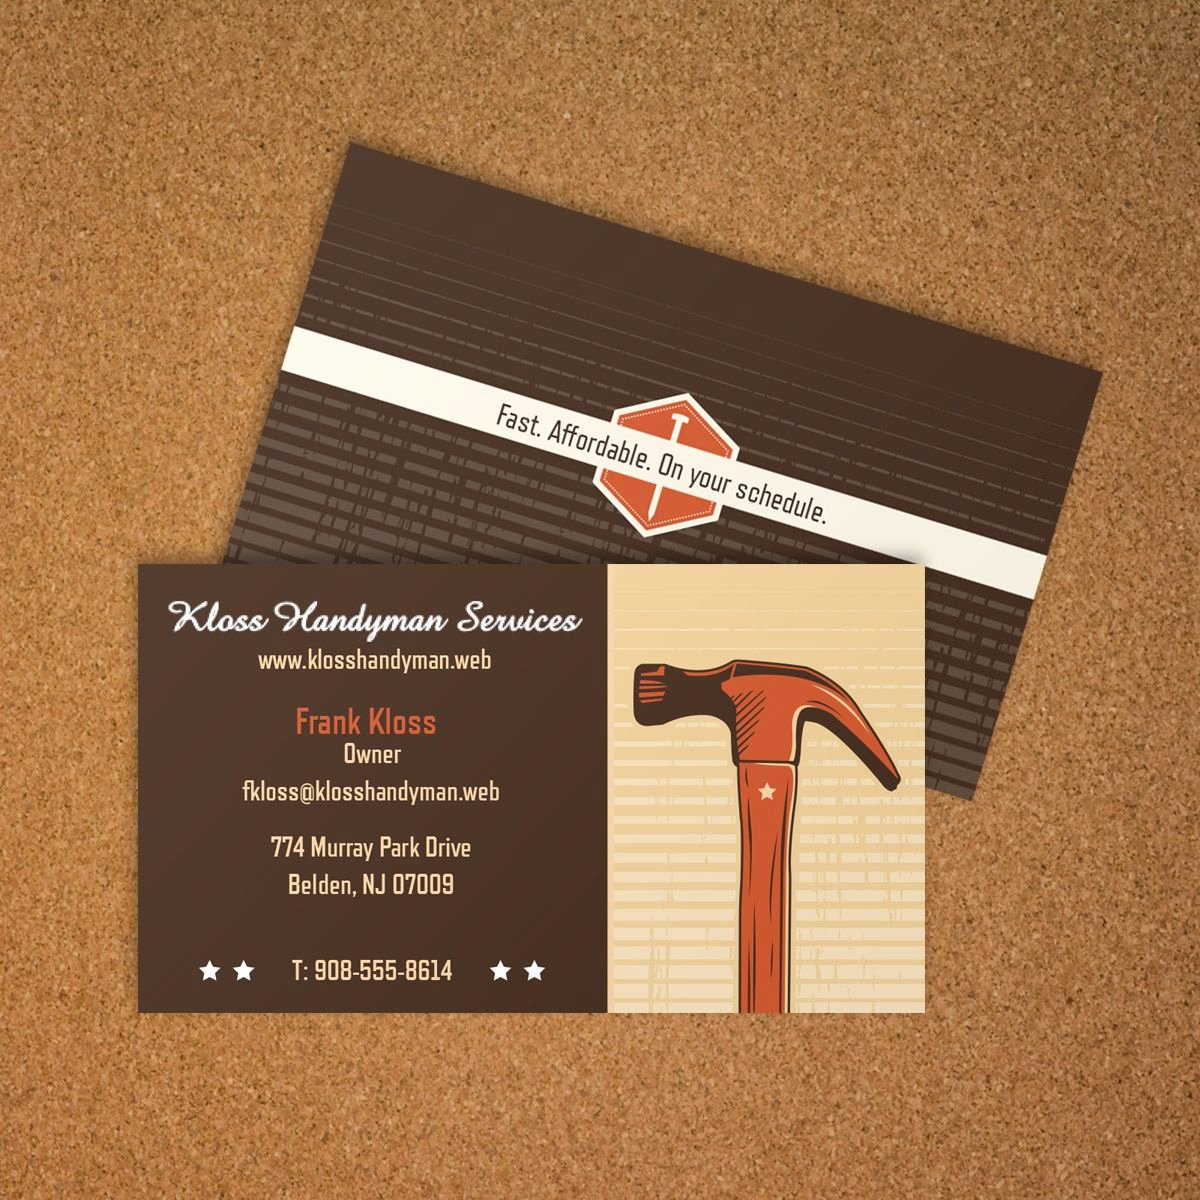 General Contractor Business Cards Lovely General Contractor Business Card Vistaprint